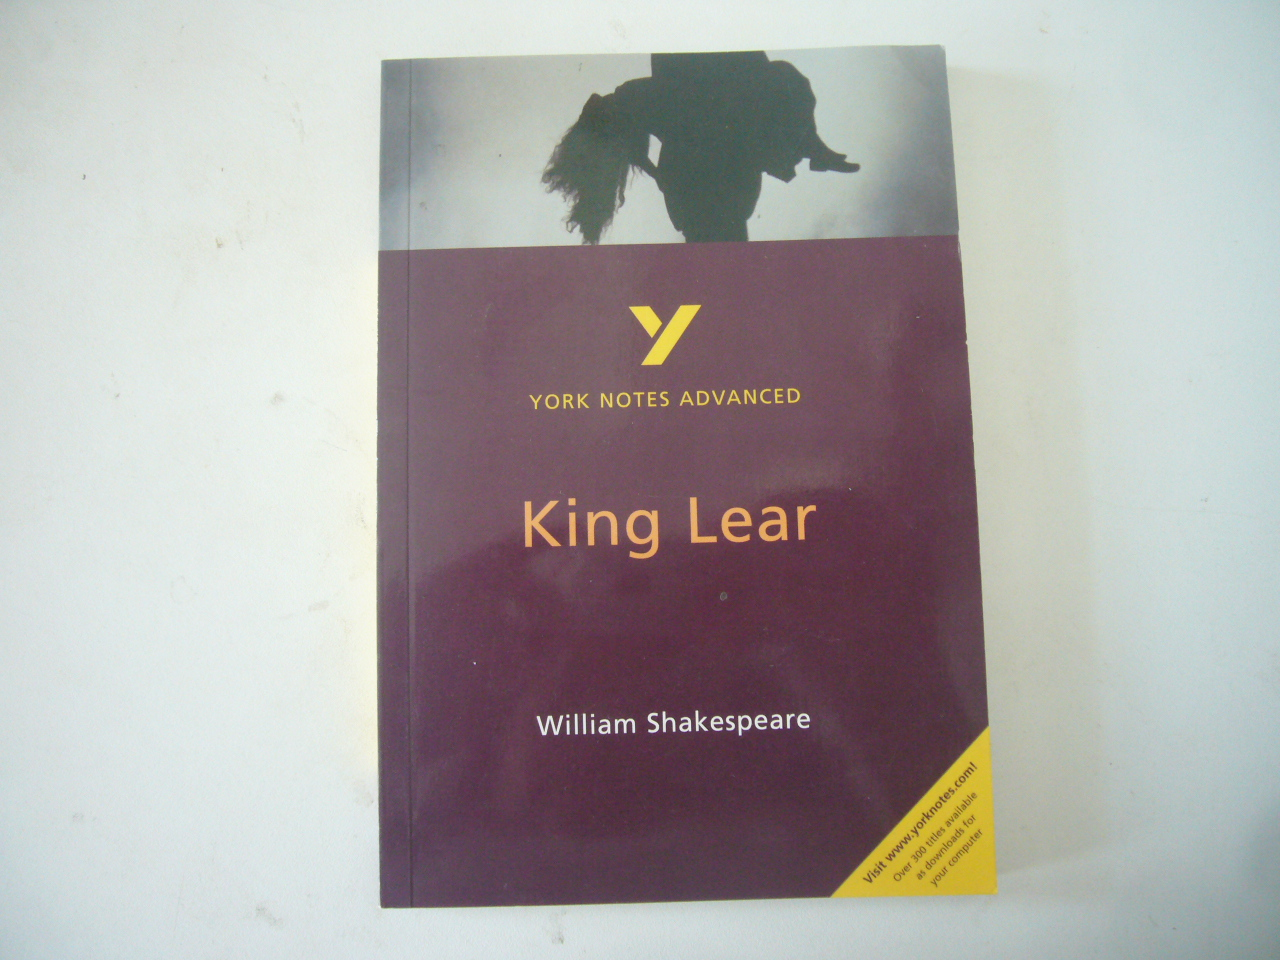 King Lear (York Notes Advanced)